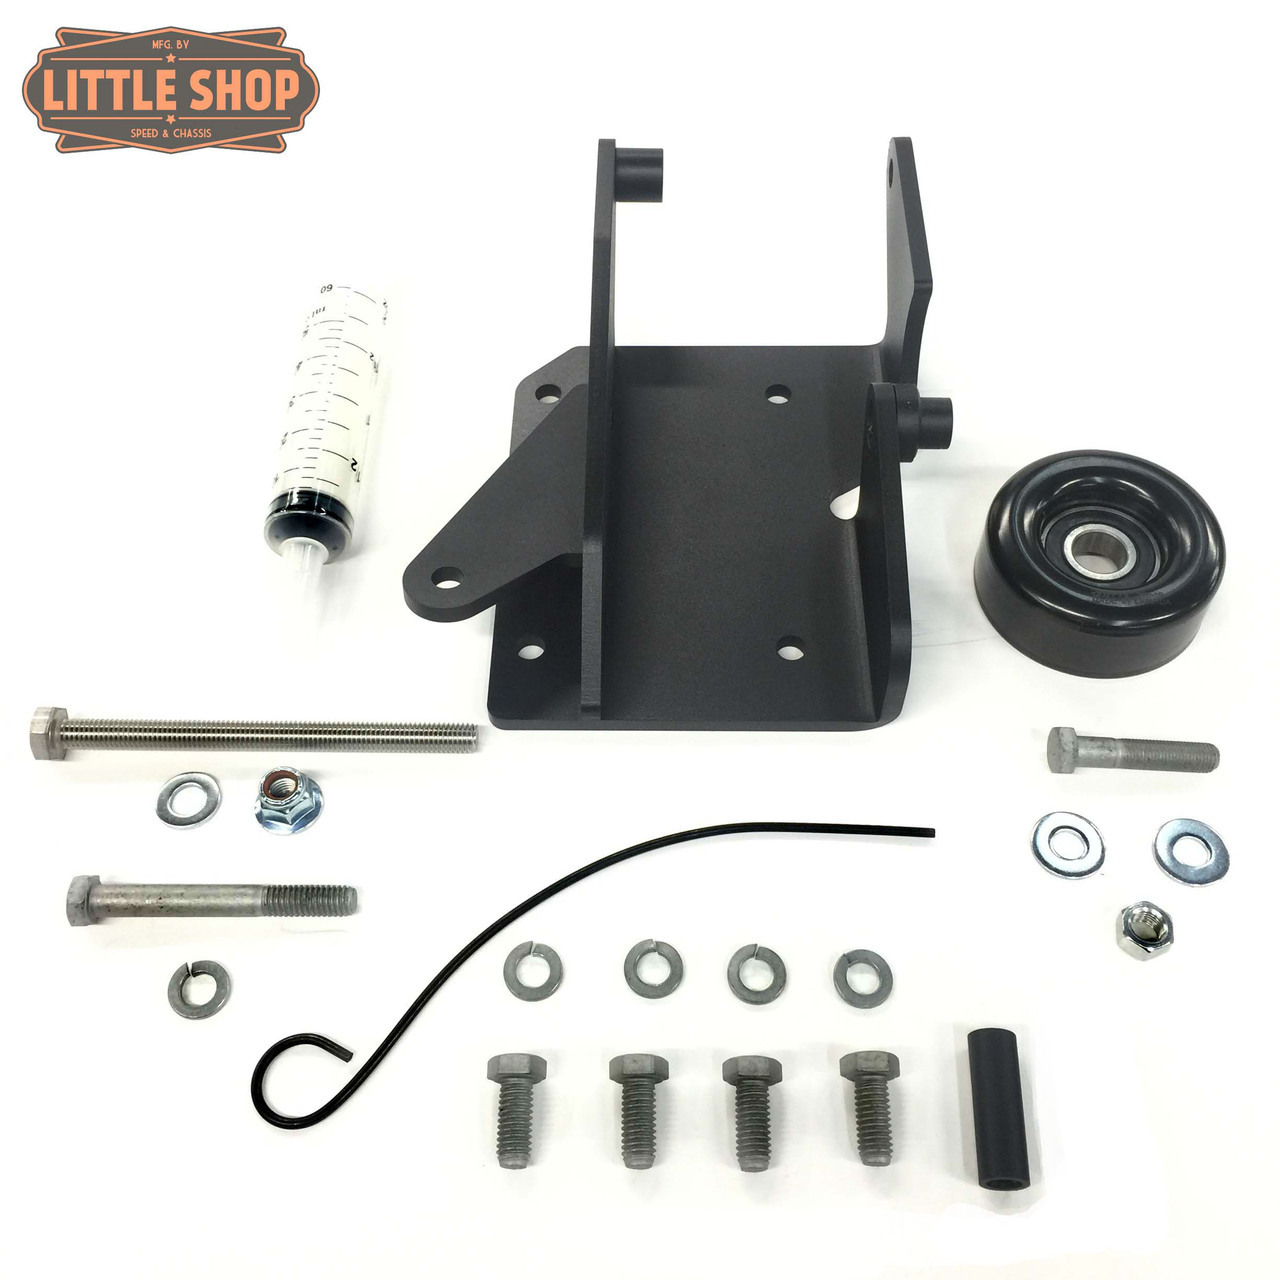 LSMFG-Pre V-JYD 90'-95' GM 4.3, 5.0, 5.7 Pre-Vortec Engine Driven Compressor Junkyard Dog Kit (Bracket, Hardware and pulley only)